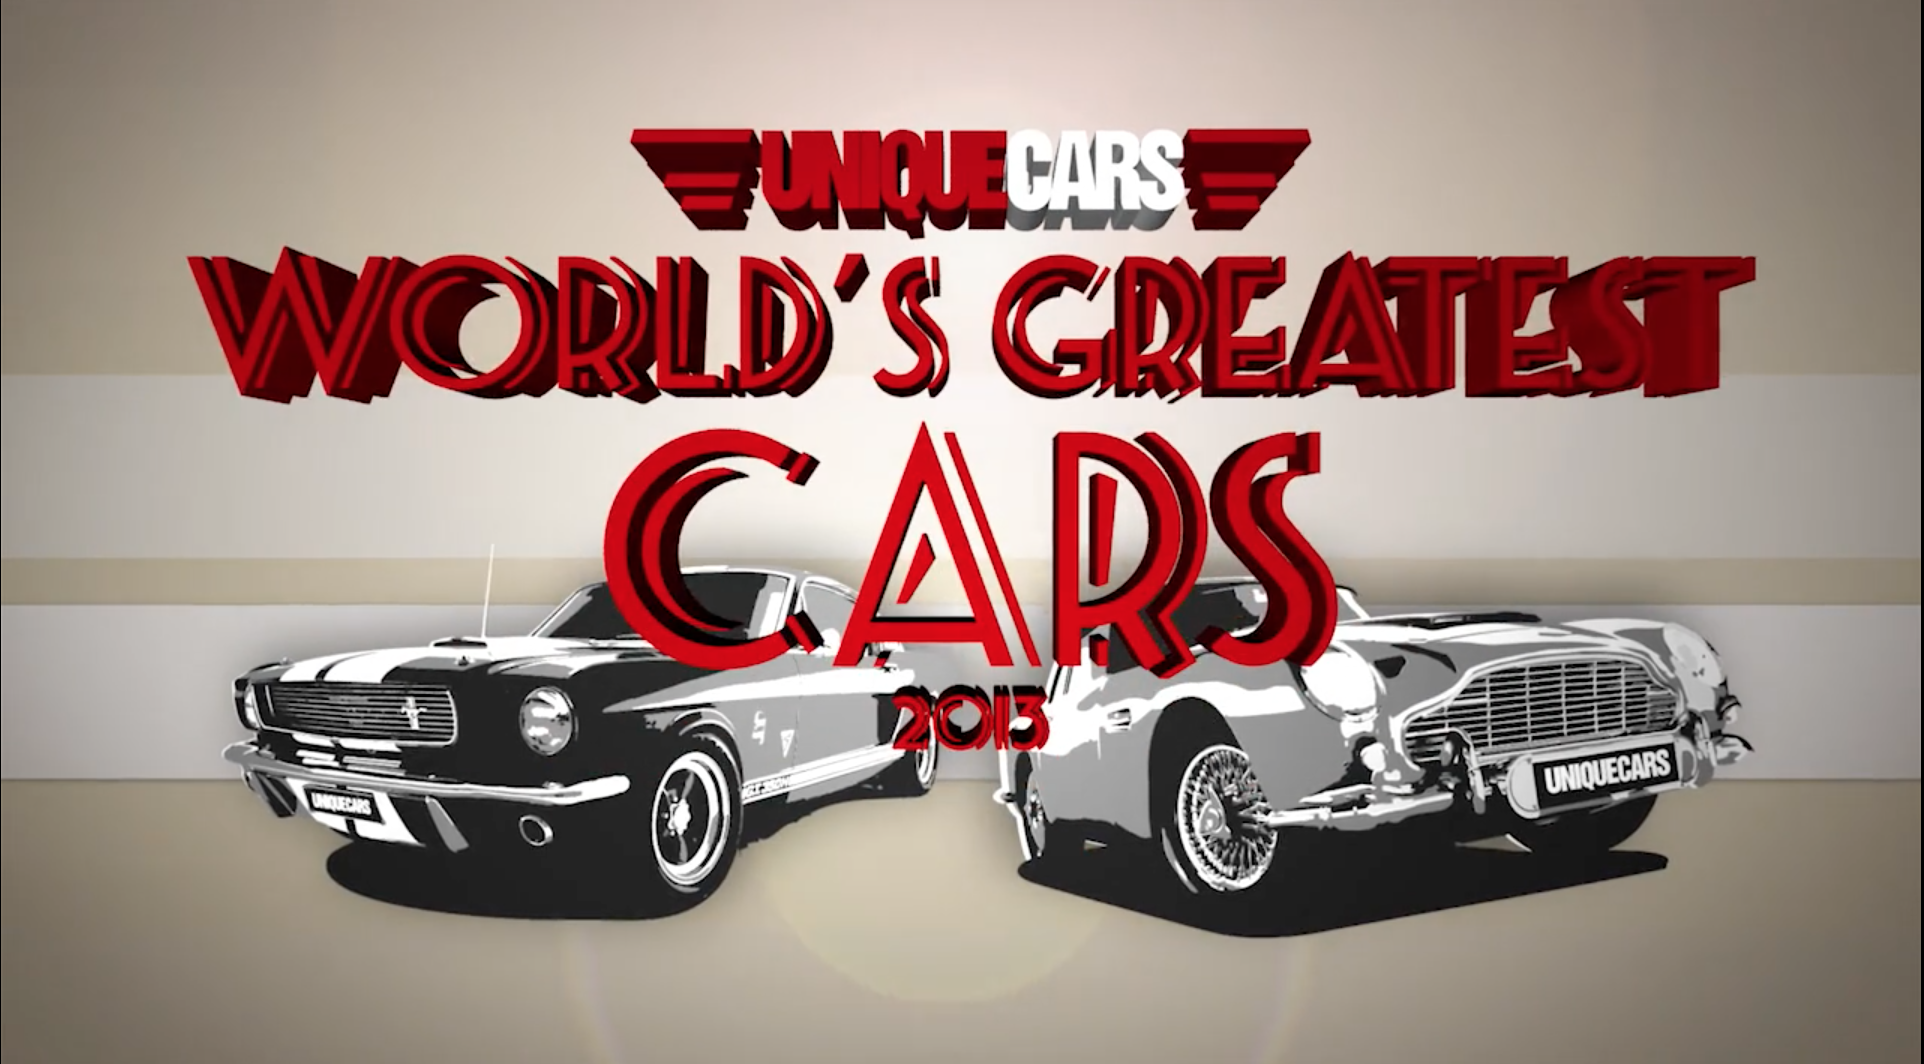 Unique Cars – Worlds Greatest Cars 2013